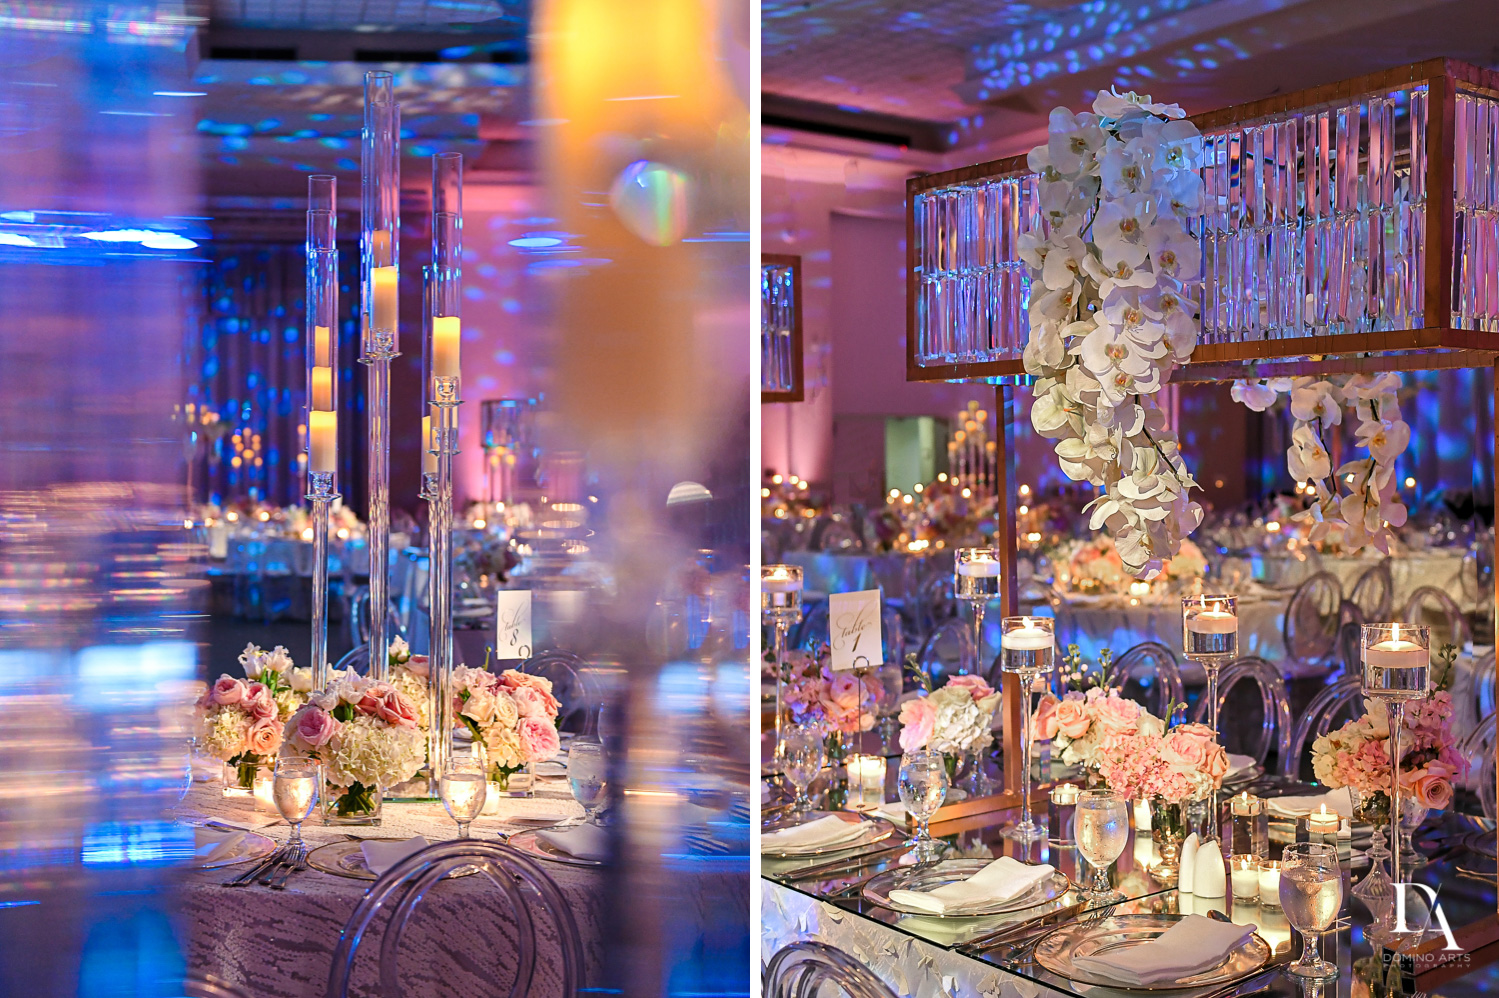 luxury at Lavish Flowers & Crystals Wedding at Aventura Turnberry Jewish Center by Domino Arts Photography